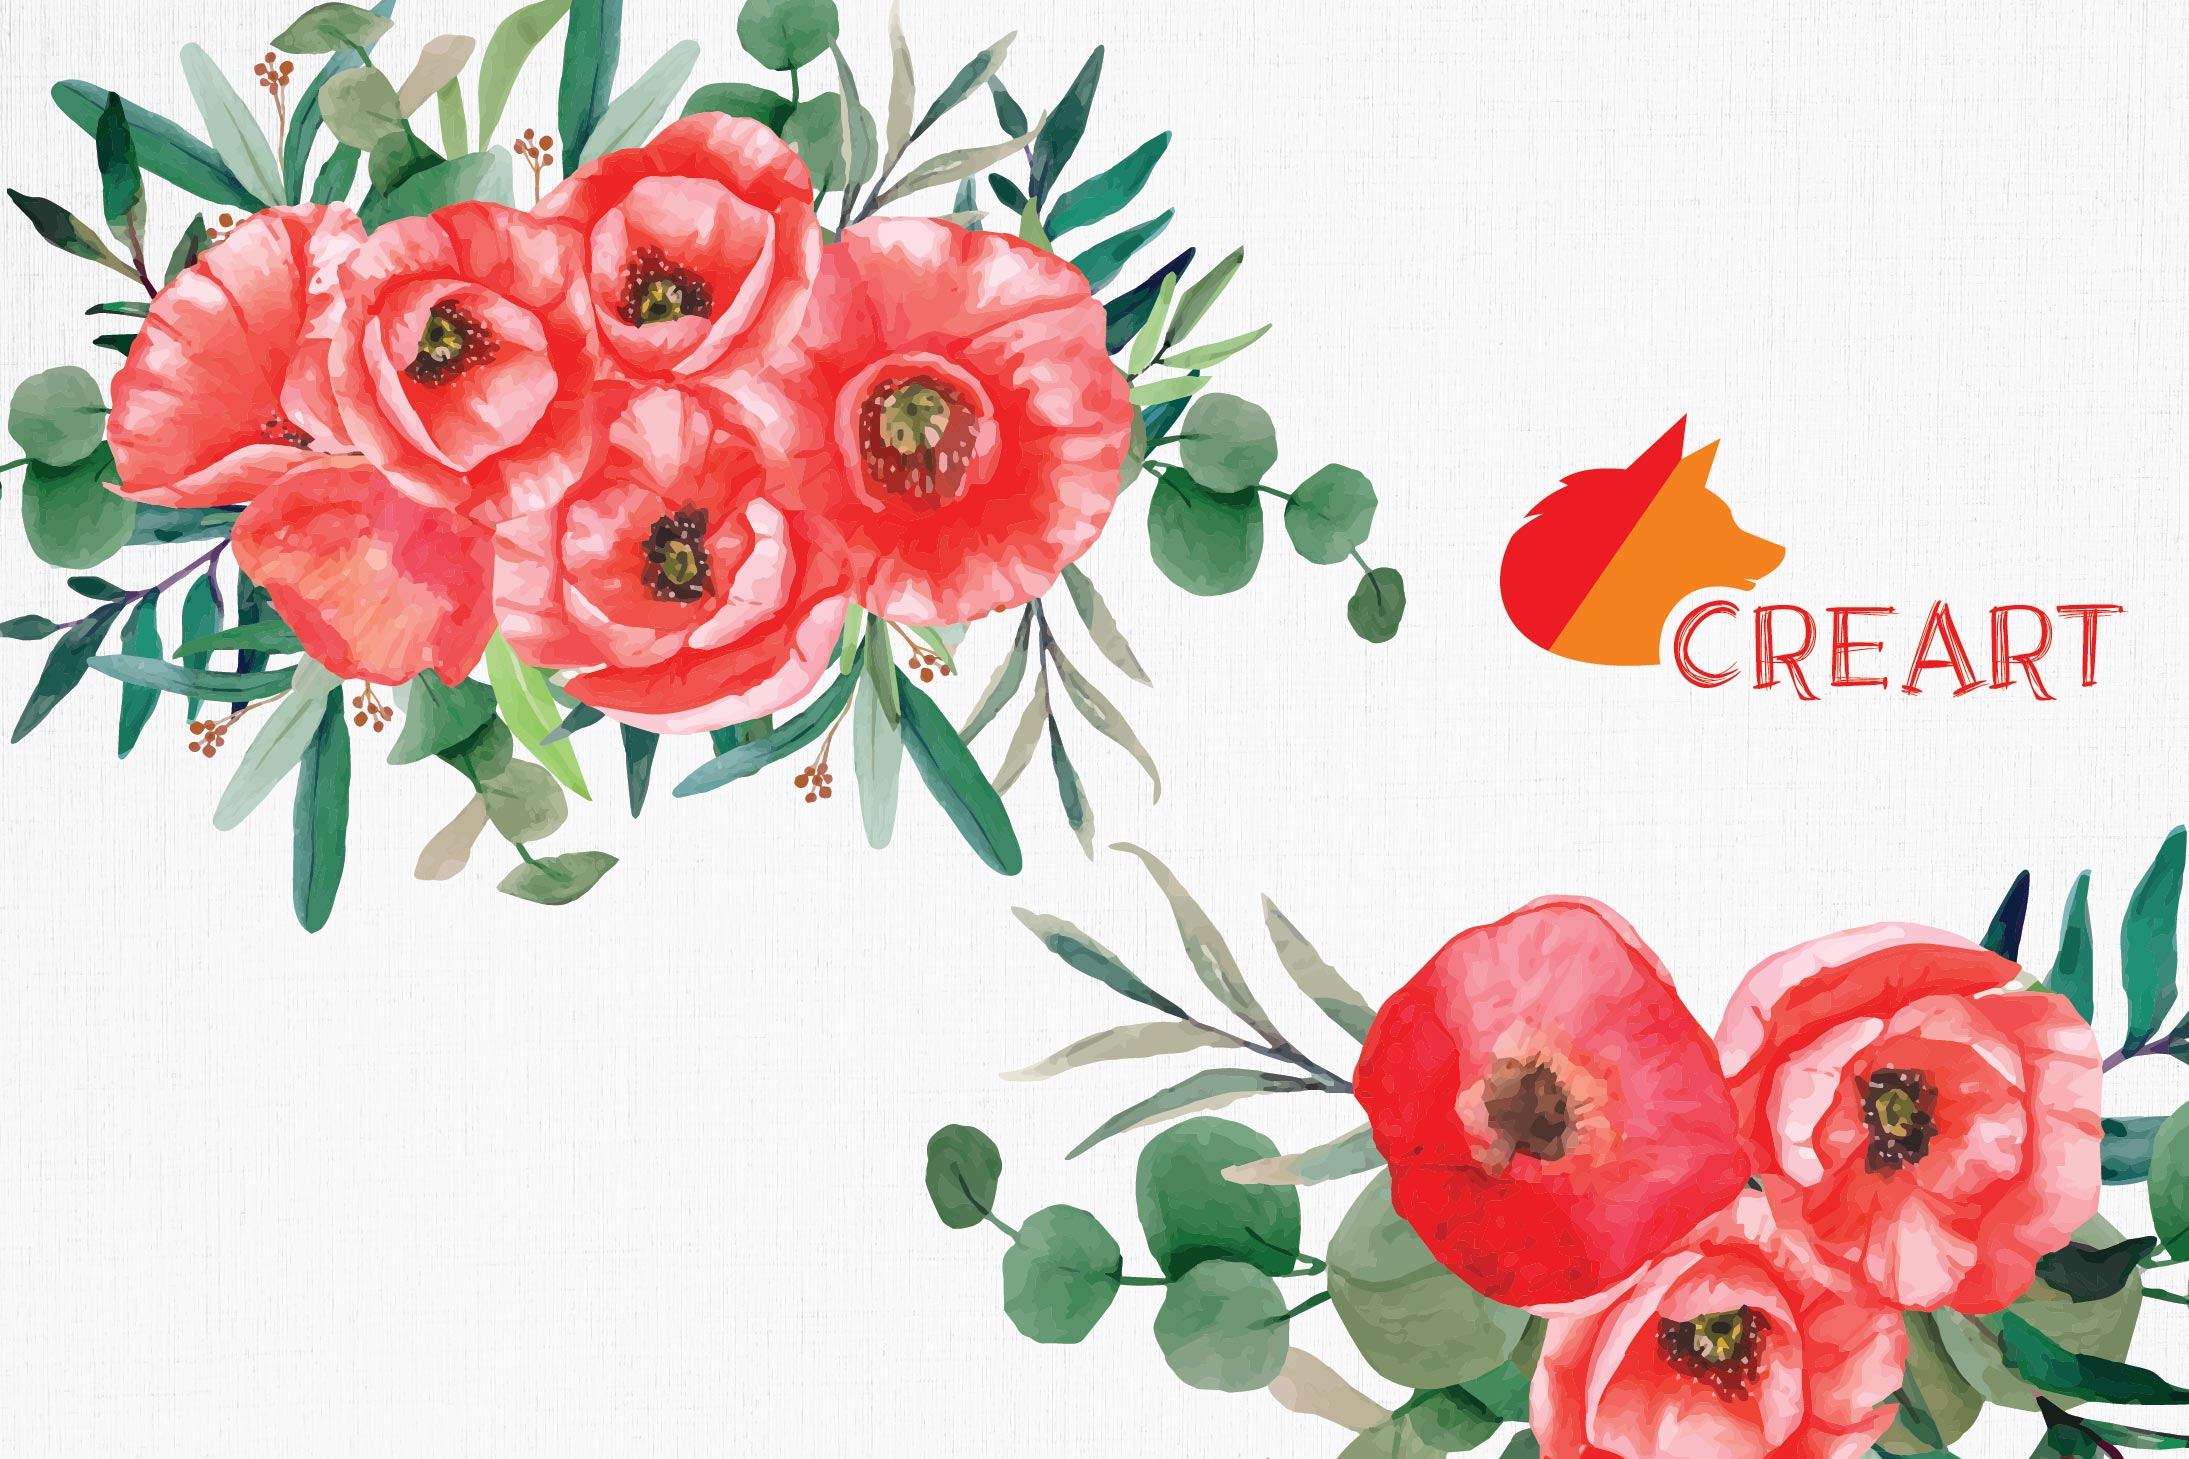 Red poppies floral watercolor wedding bouquets, floral decor example image 8